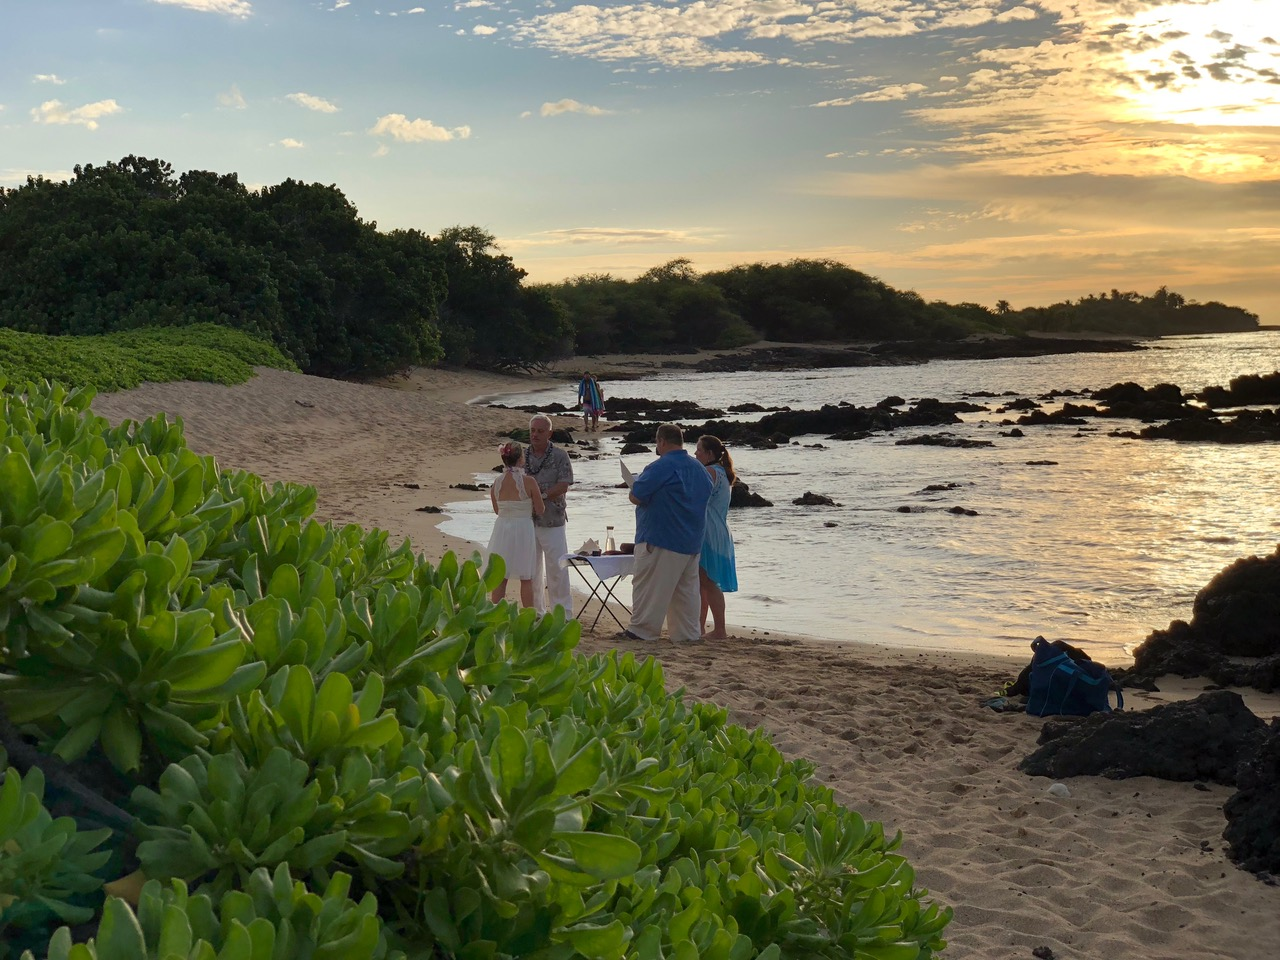 Many come to Hawai'i to get married on the beach